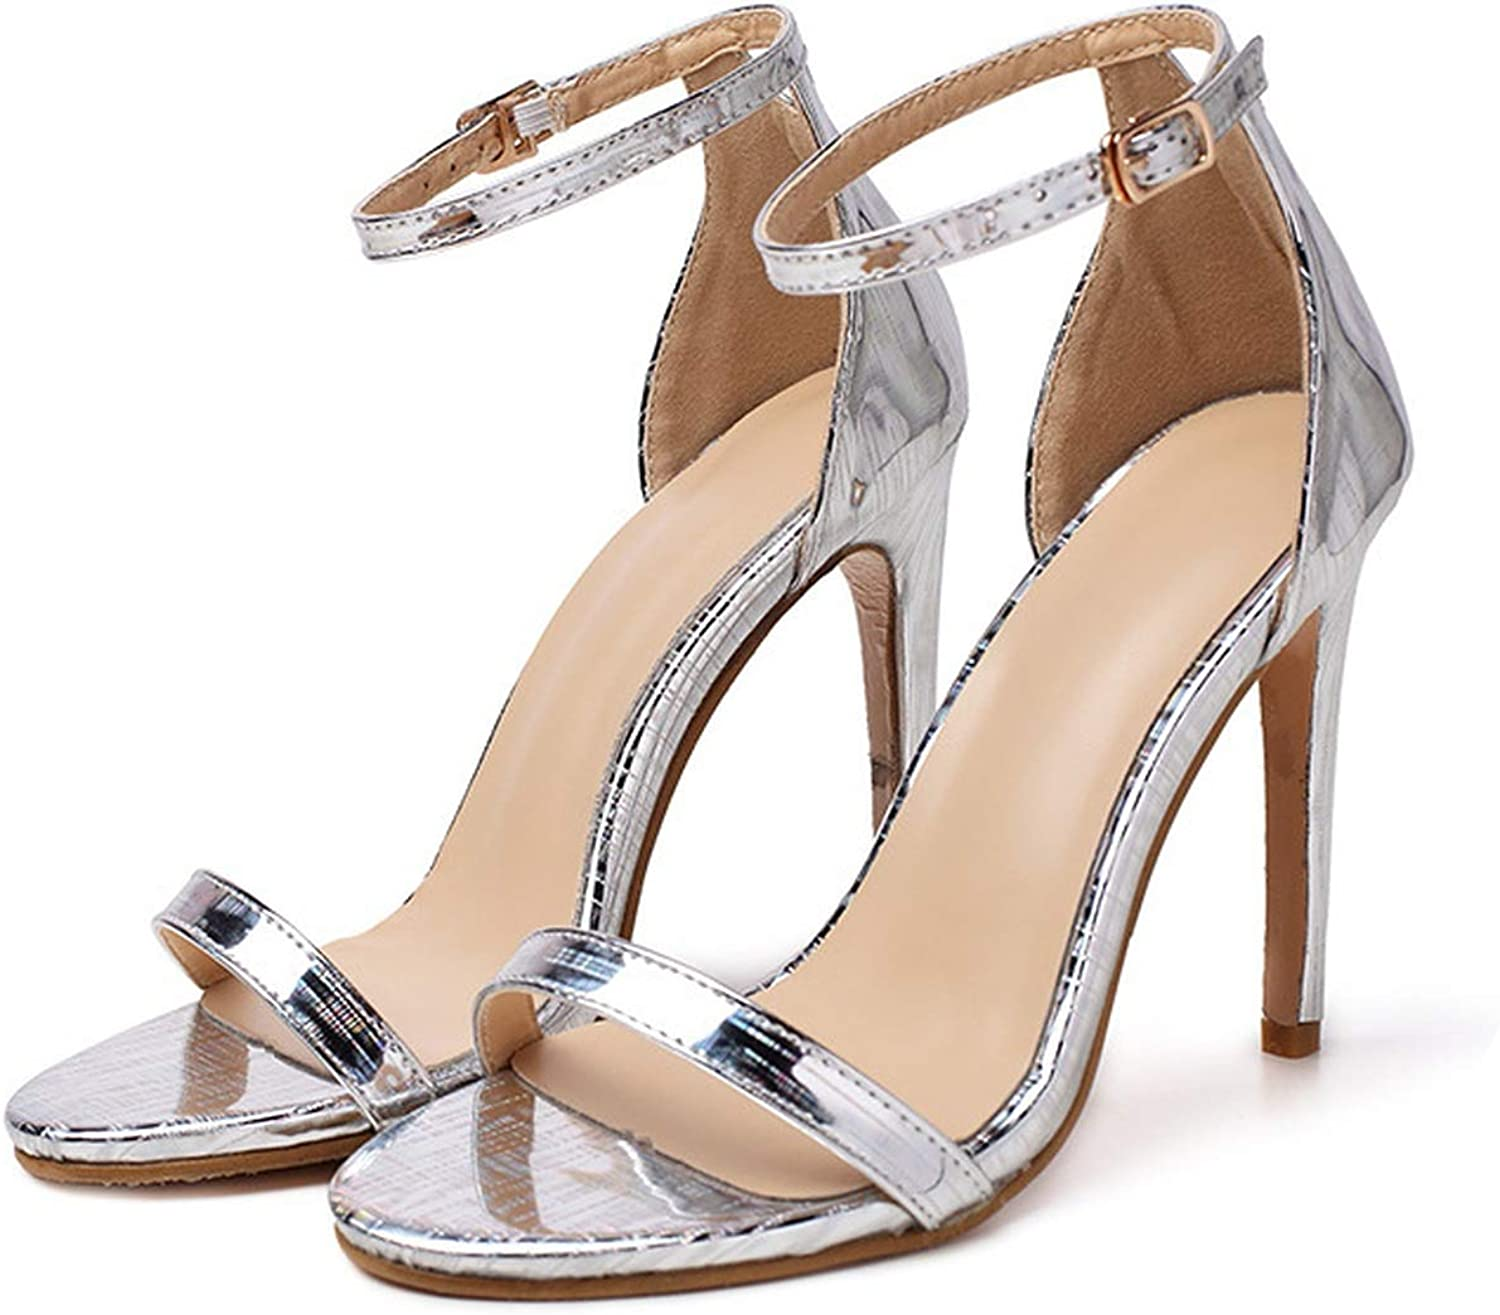 Women Pumps High Heels Silver Sexy High Heels shoes Buckle Staple Luxury Wedding Party shoes